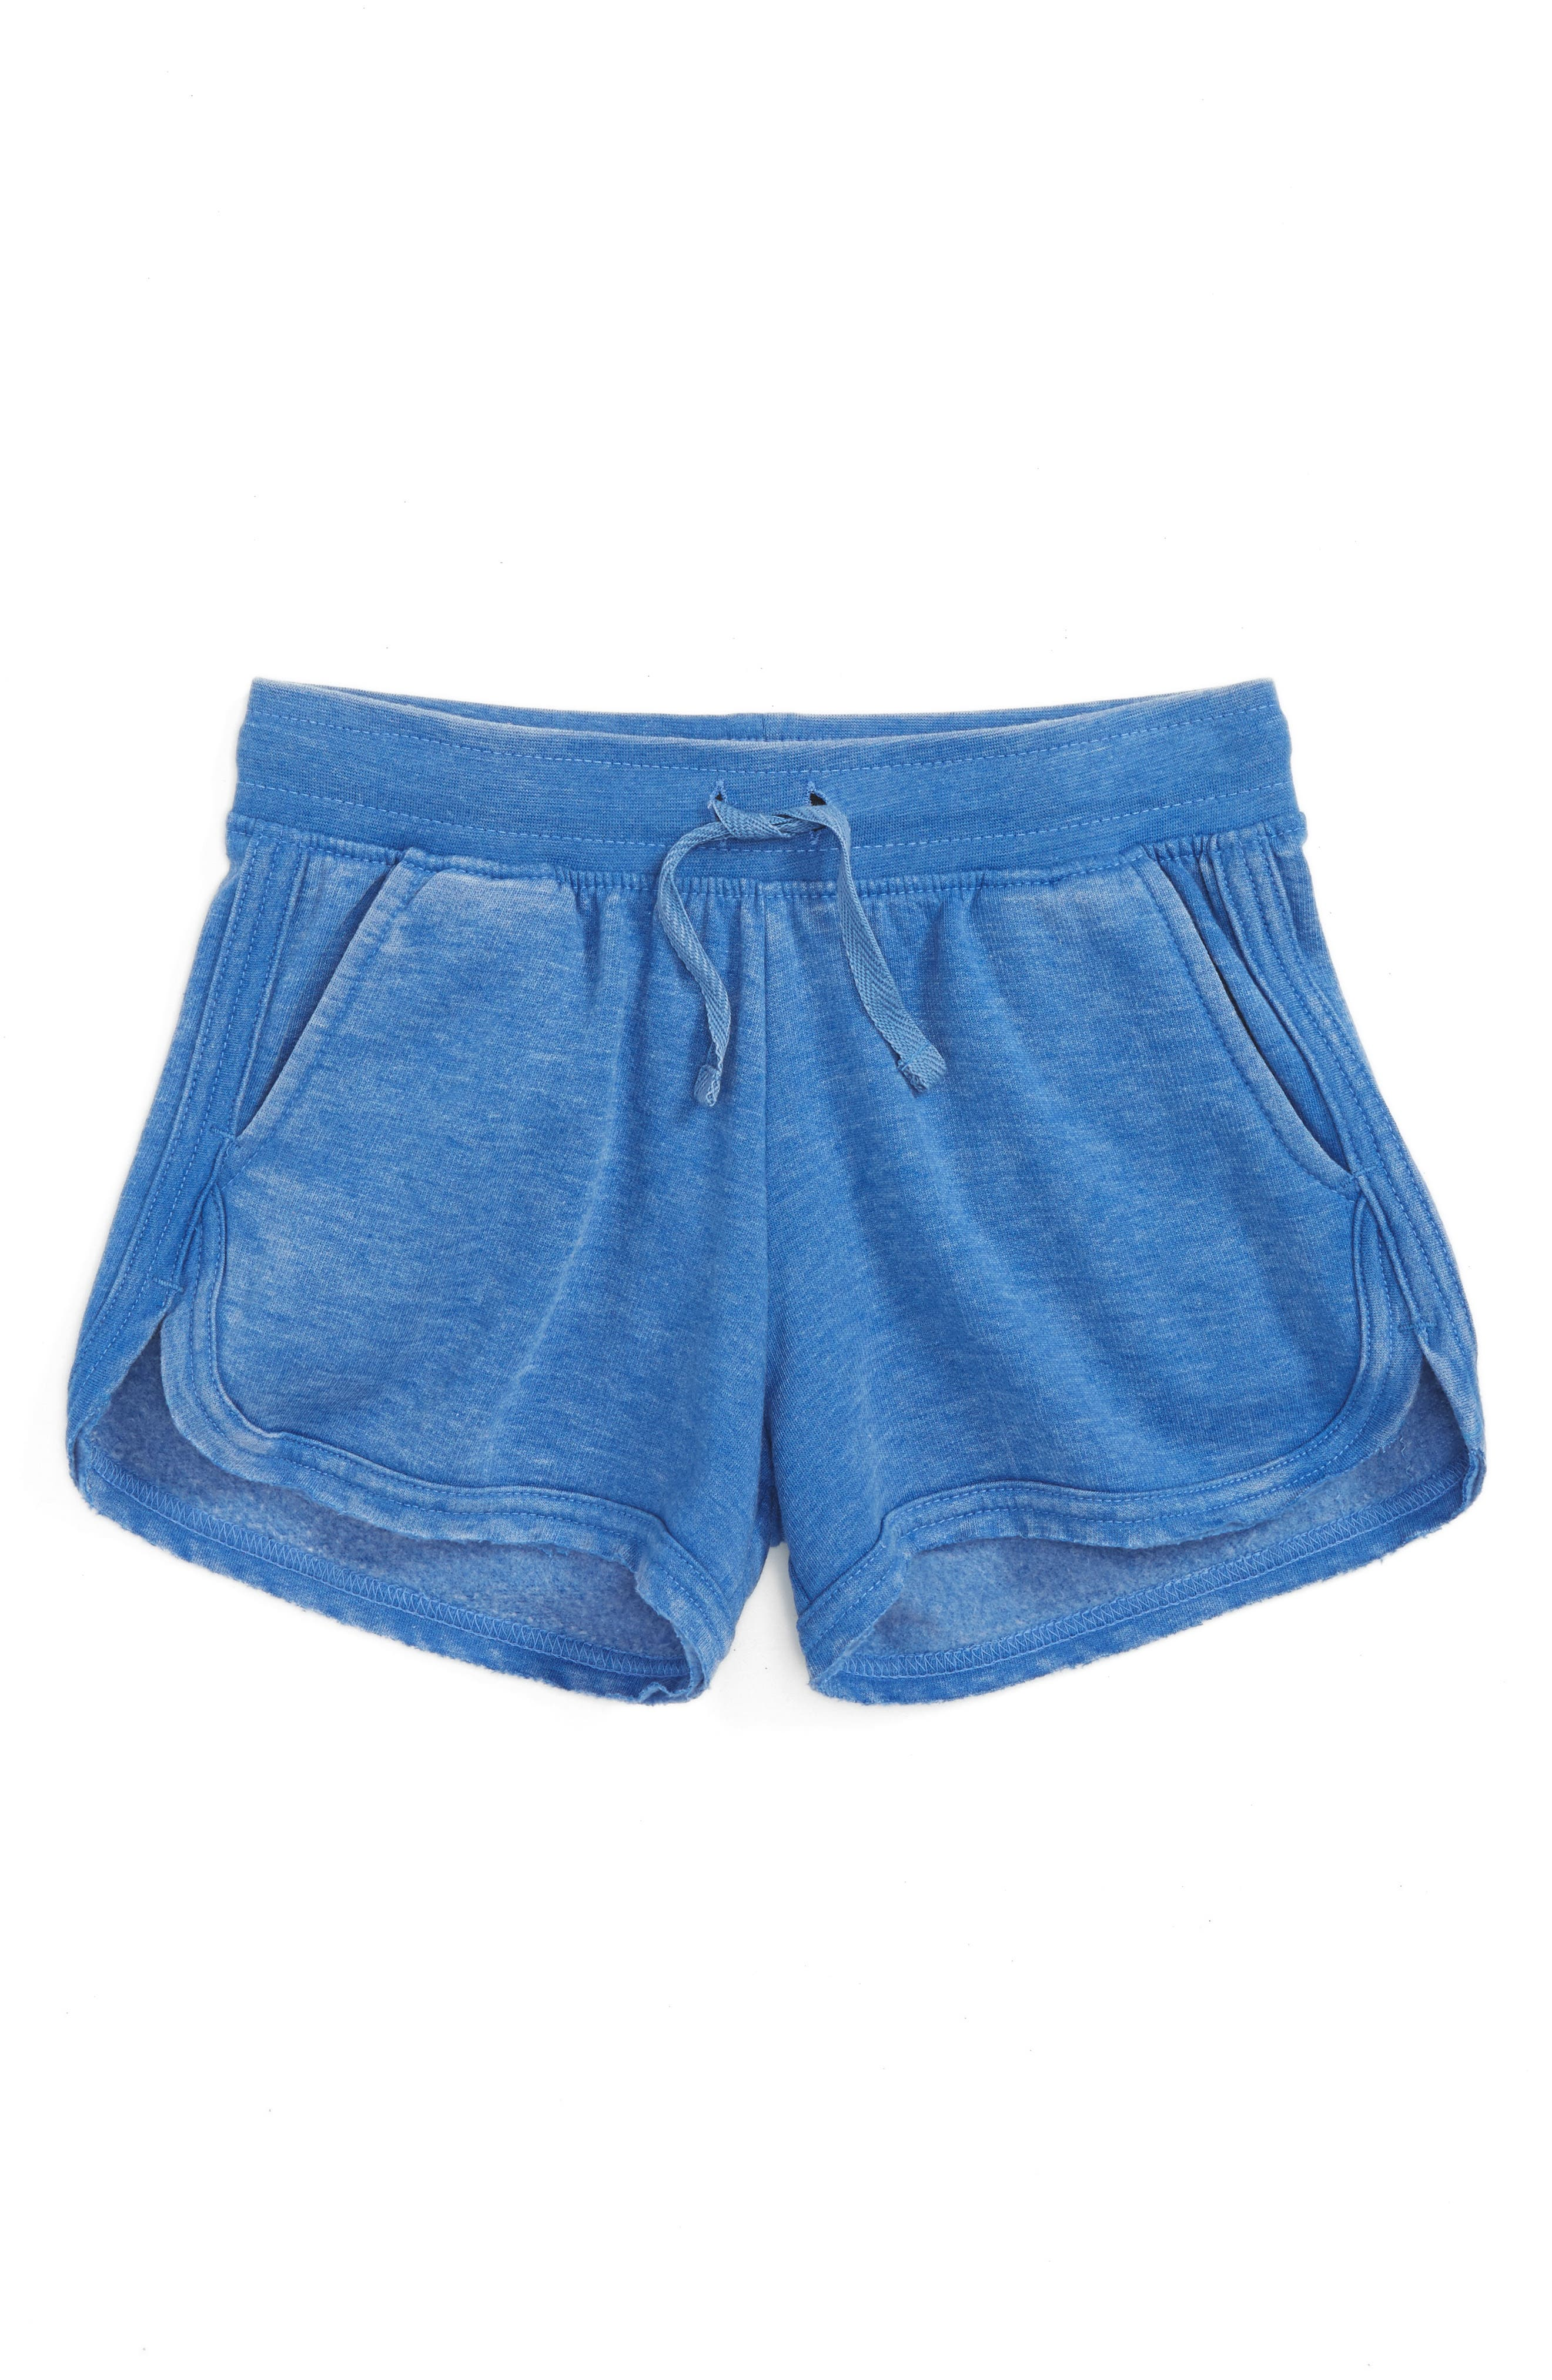 C & C California Cotton Blend Shorts (Big Girls)